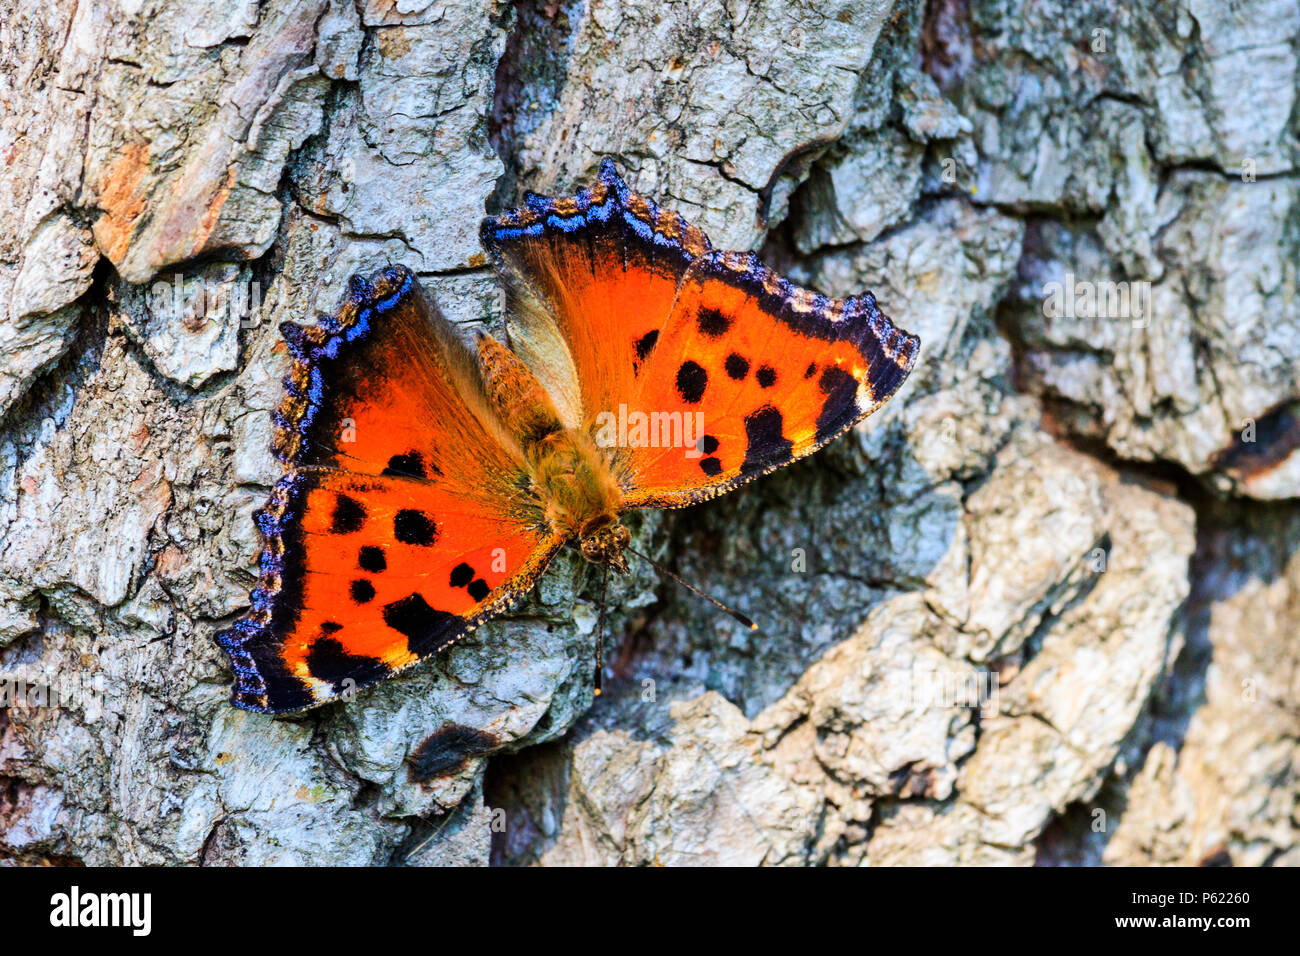 butterfly colored and fragile sitting on a rough, dry texture - Stock Image